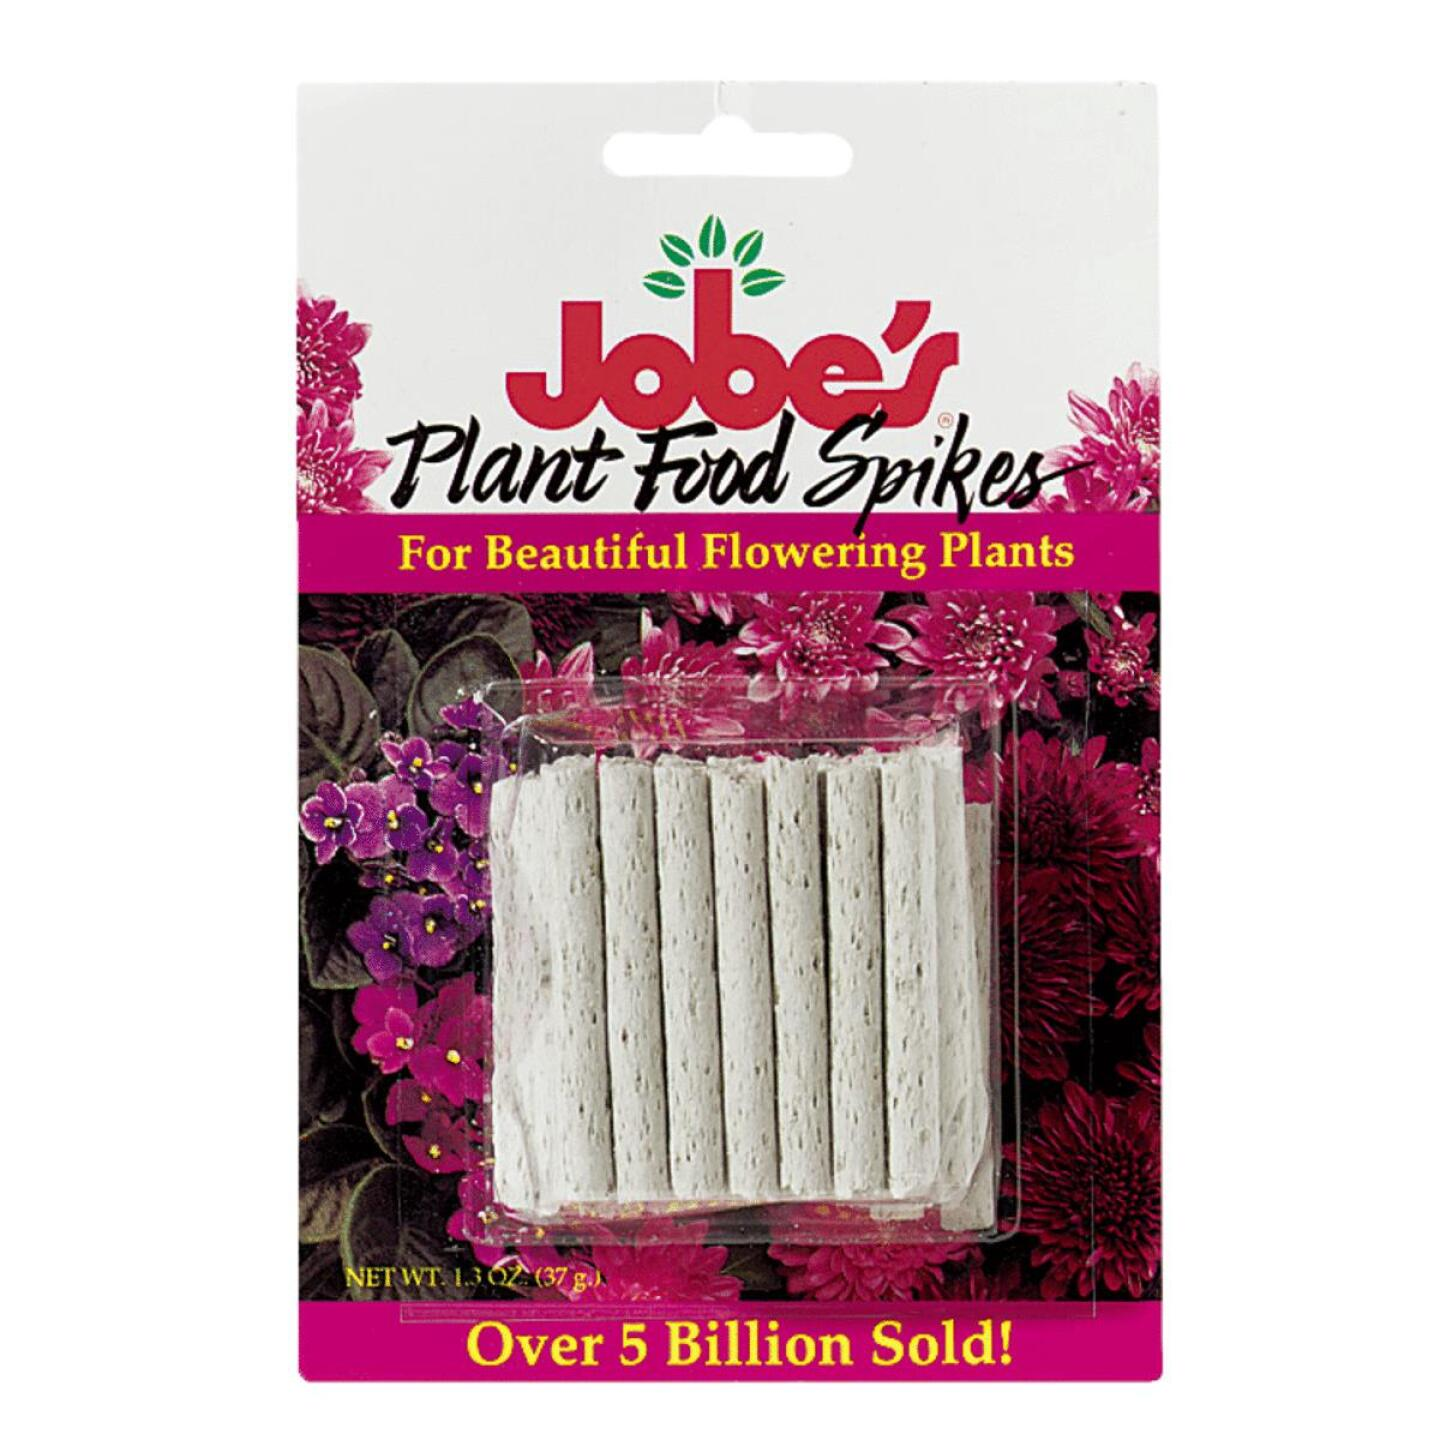 Jobe's 10-10-4 Flowering Plant Food Spikes (50-Pack) Image 1